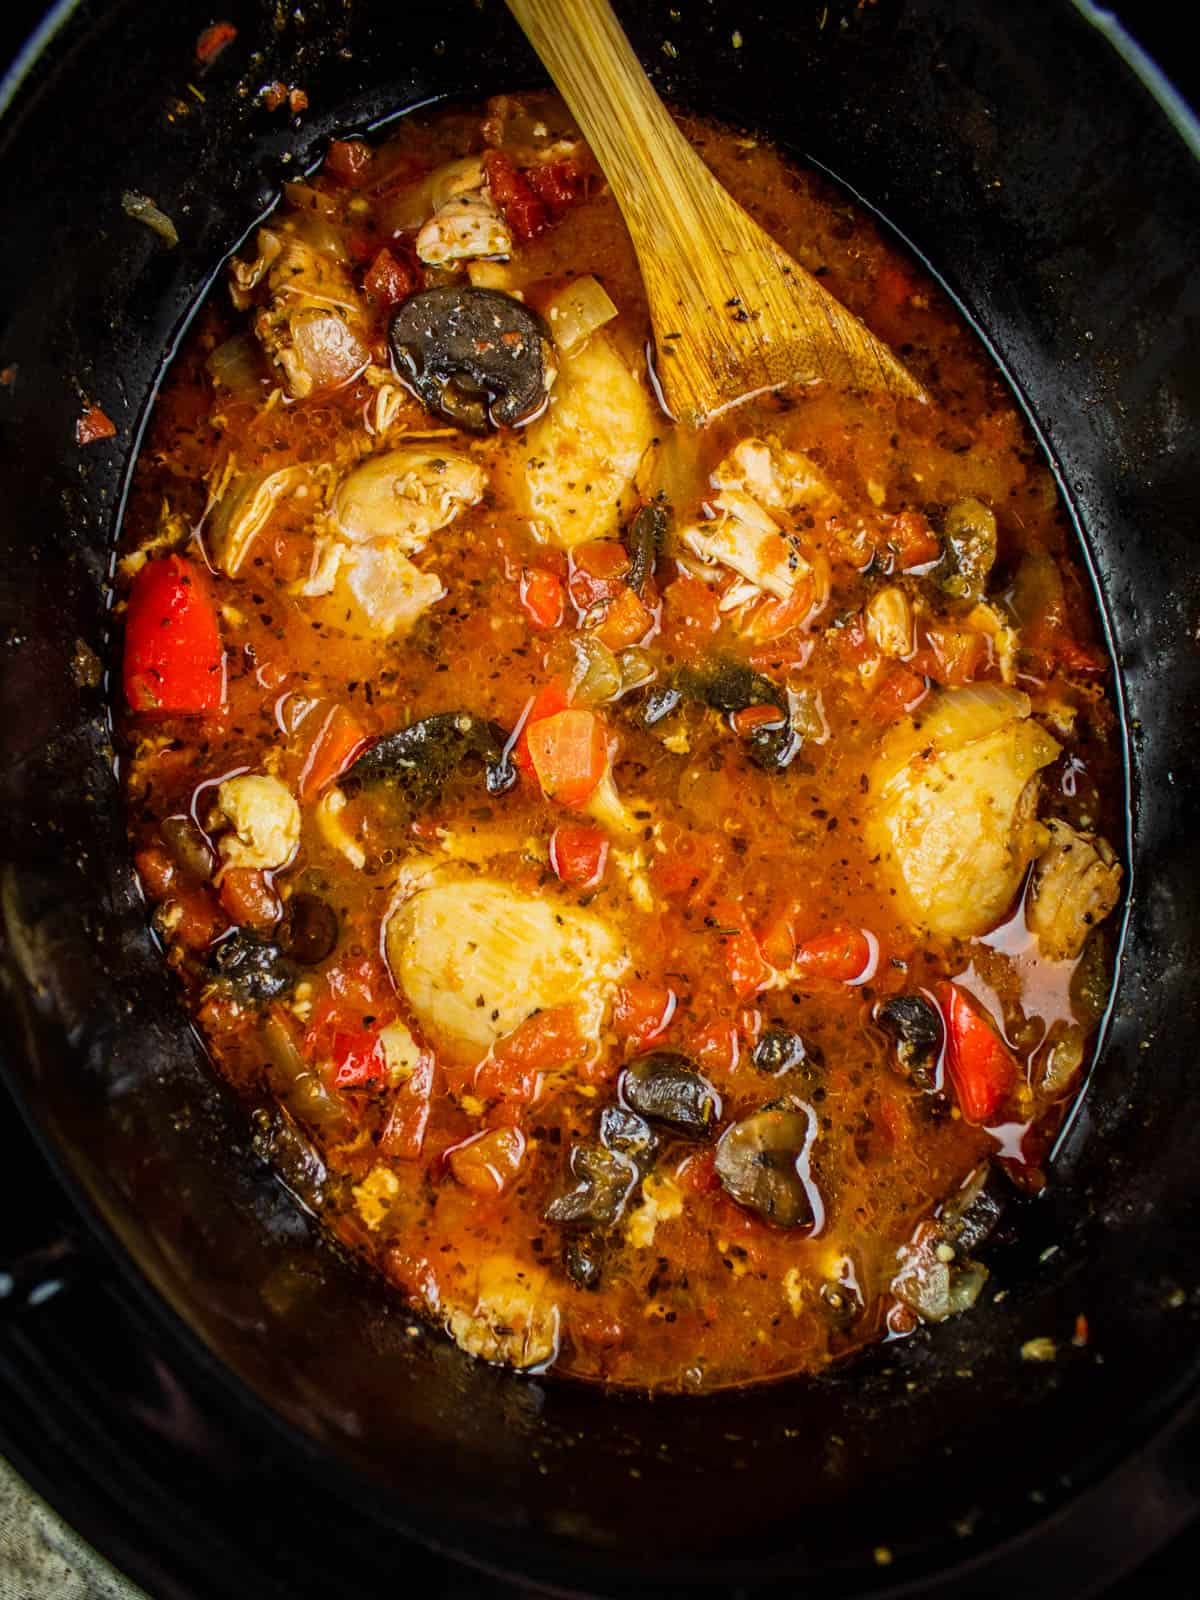 cooked chicken cacciatore in a slow cooker